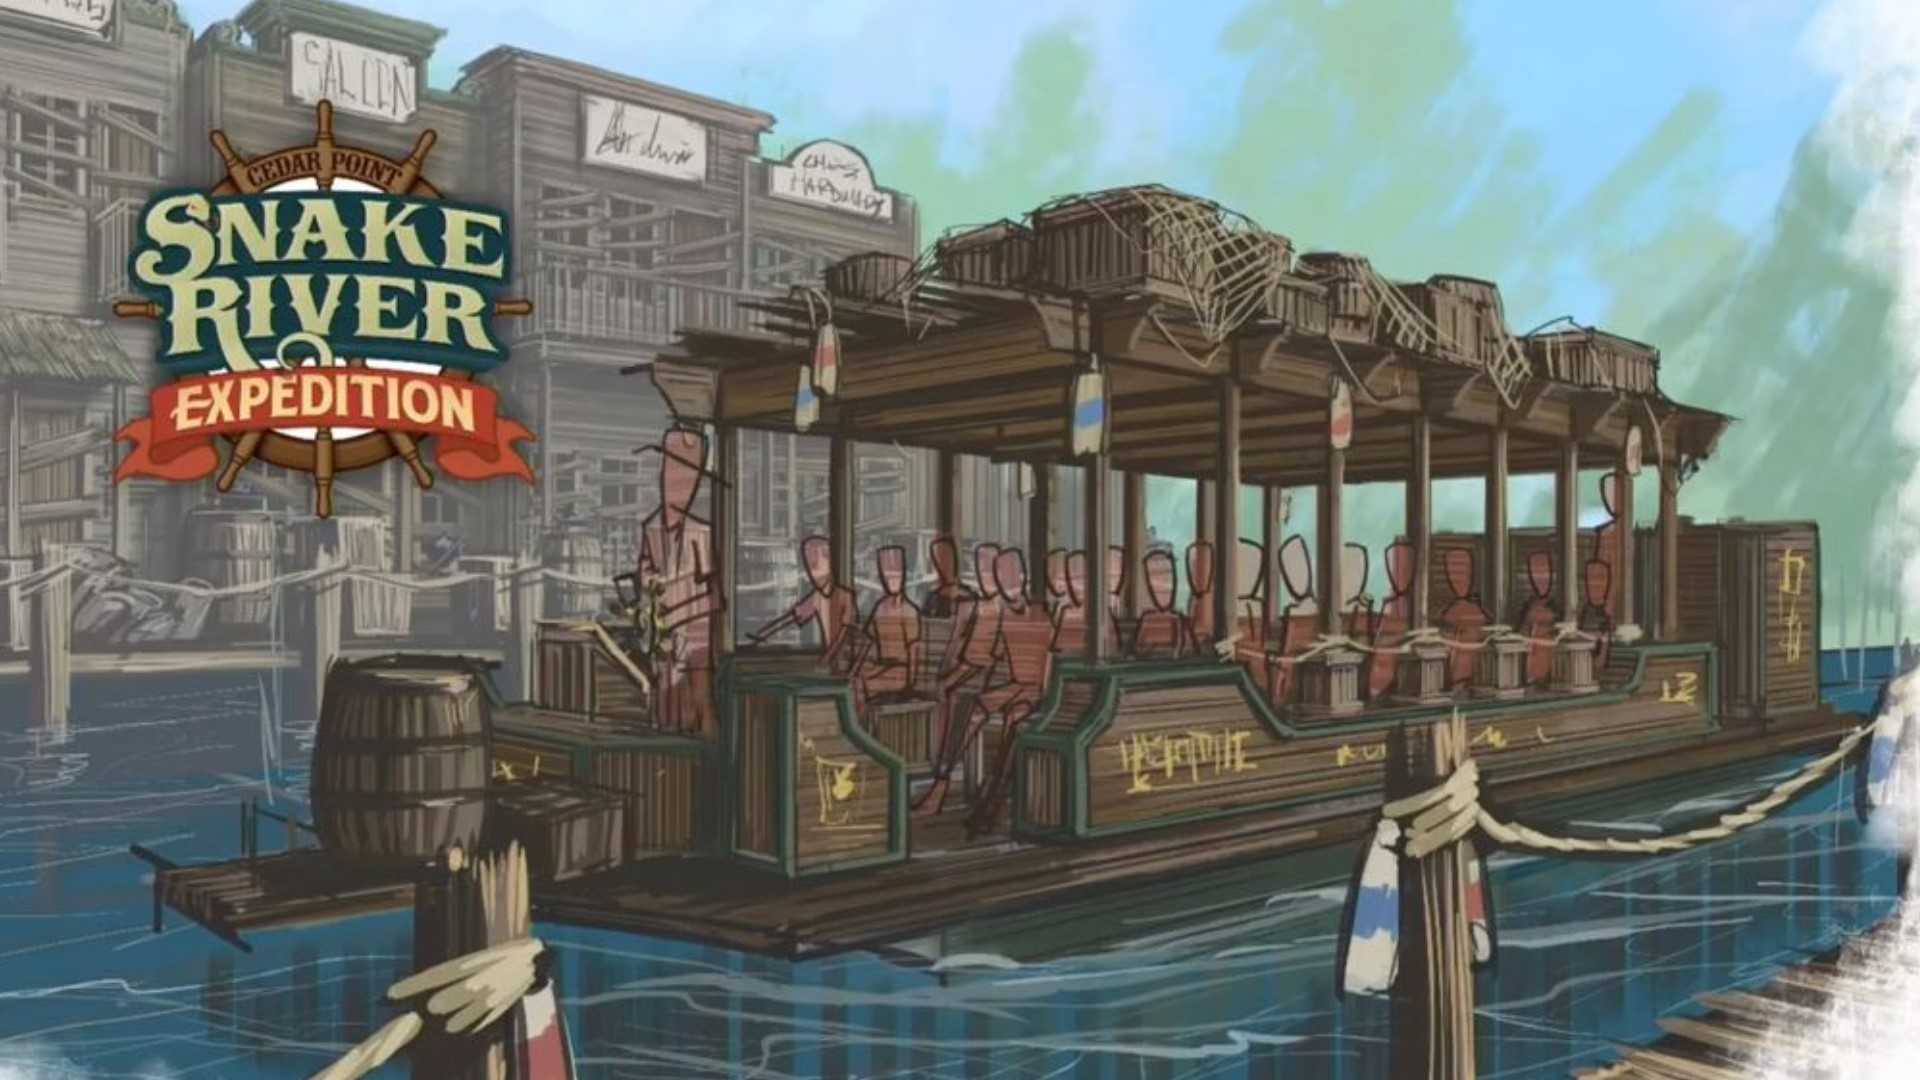 Cedar Point announces Snake River Expedition as new 2020 ride